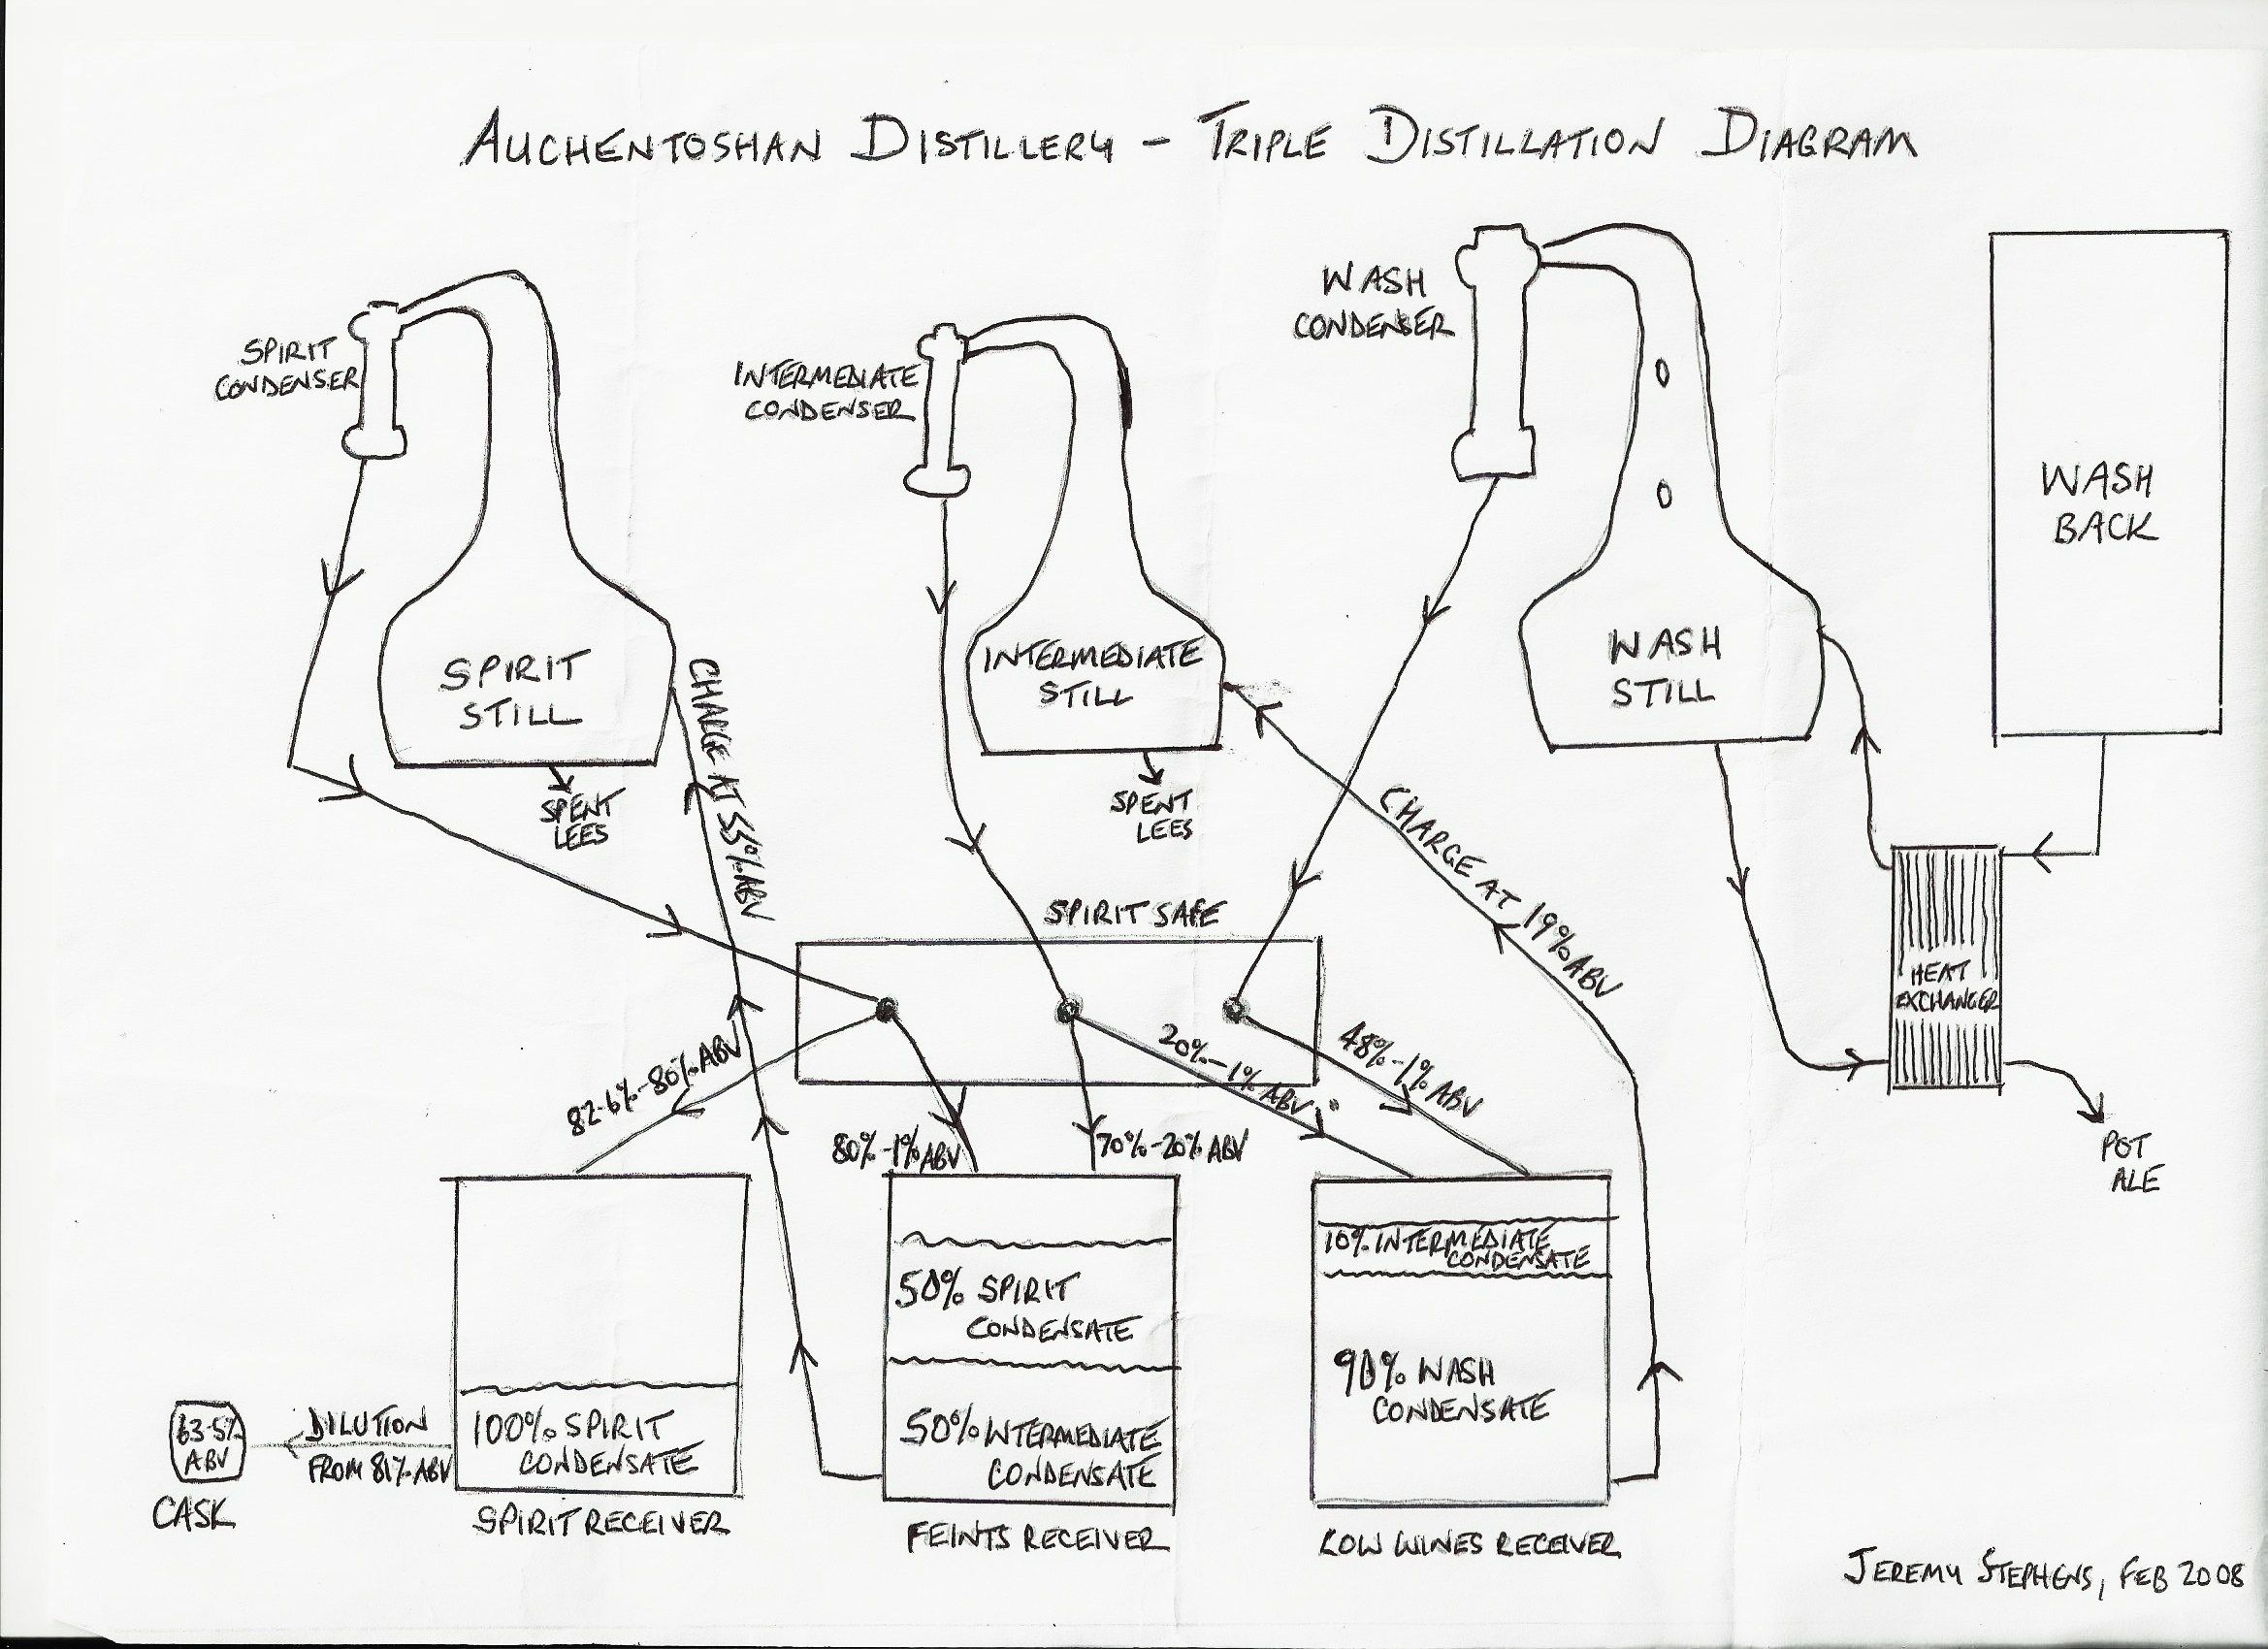 auchentoshan triple distil diagram drawn by distillery manager jeremy stevens